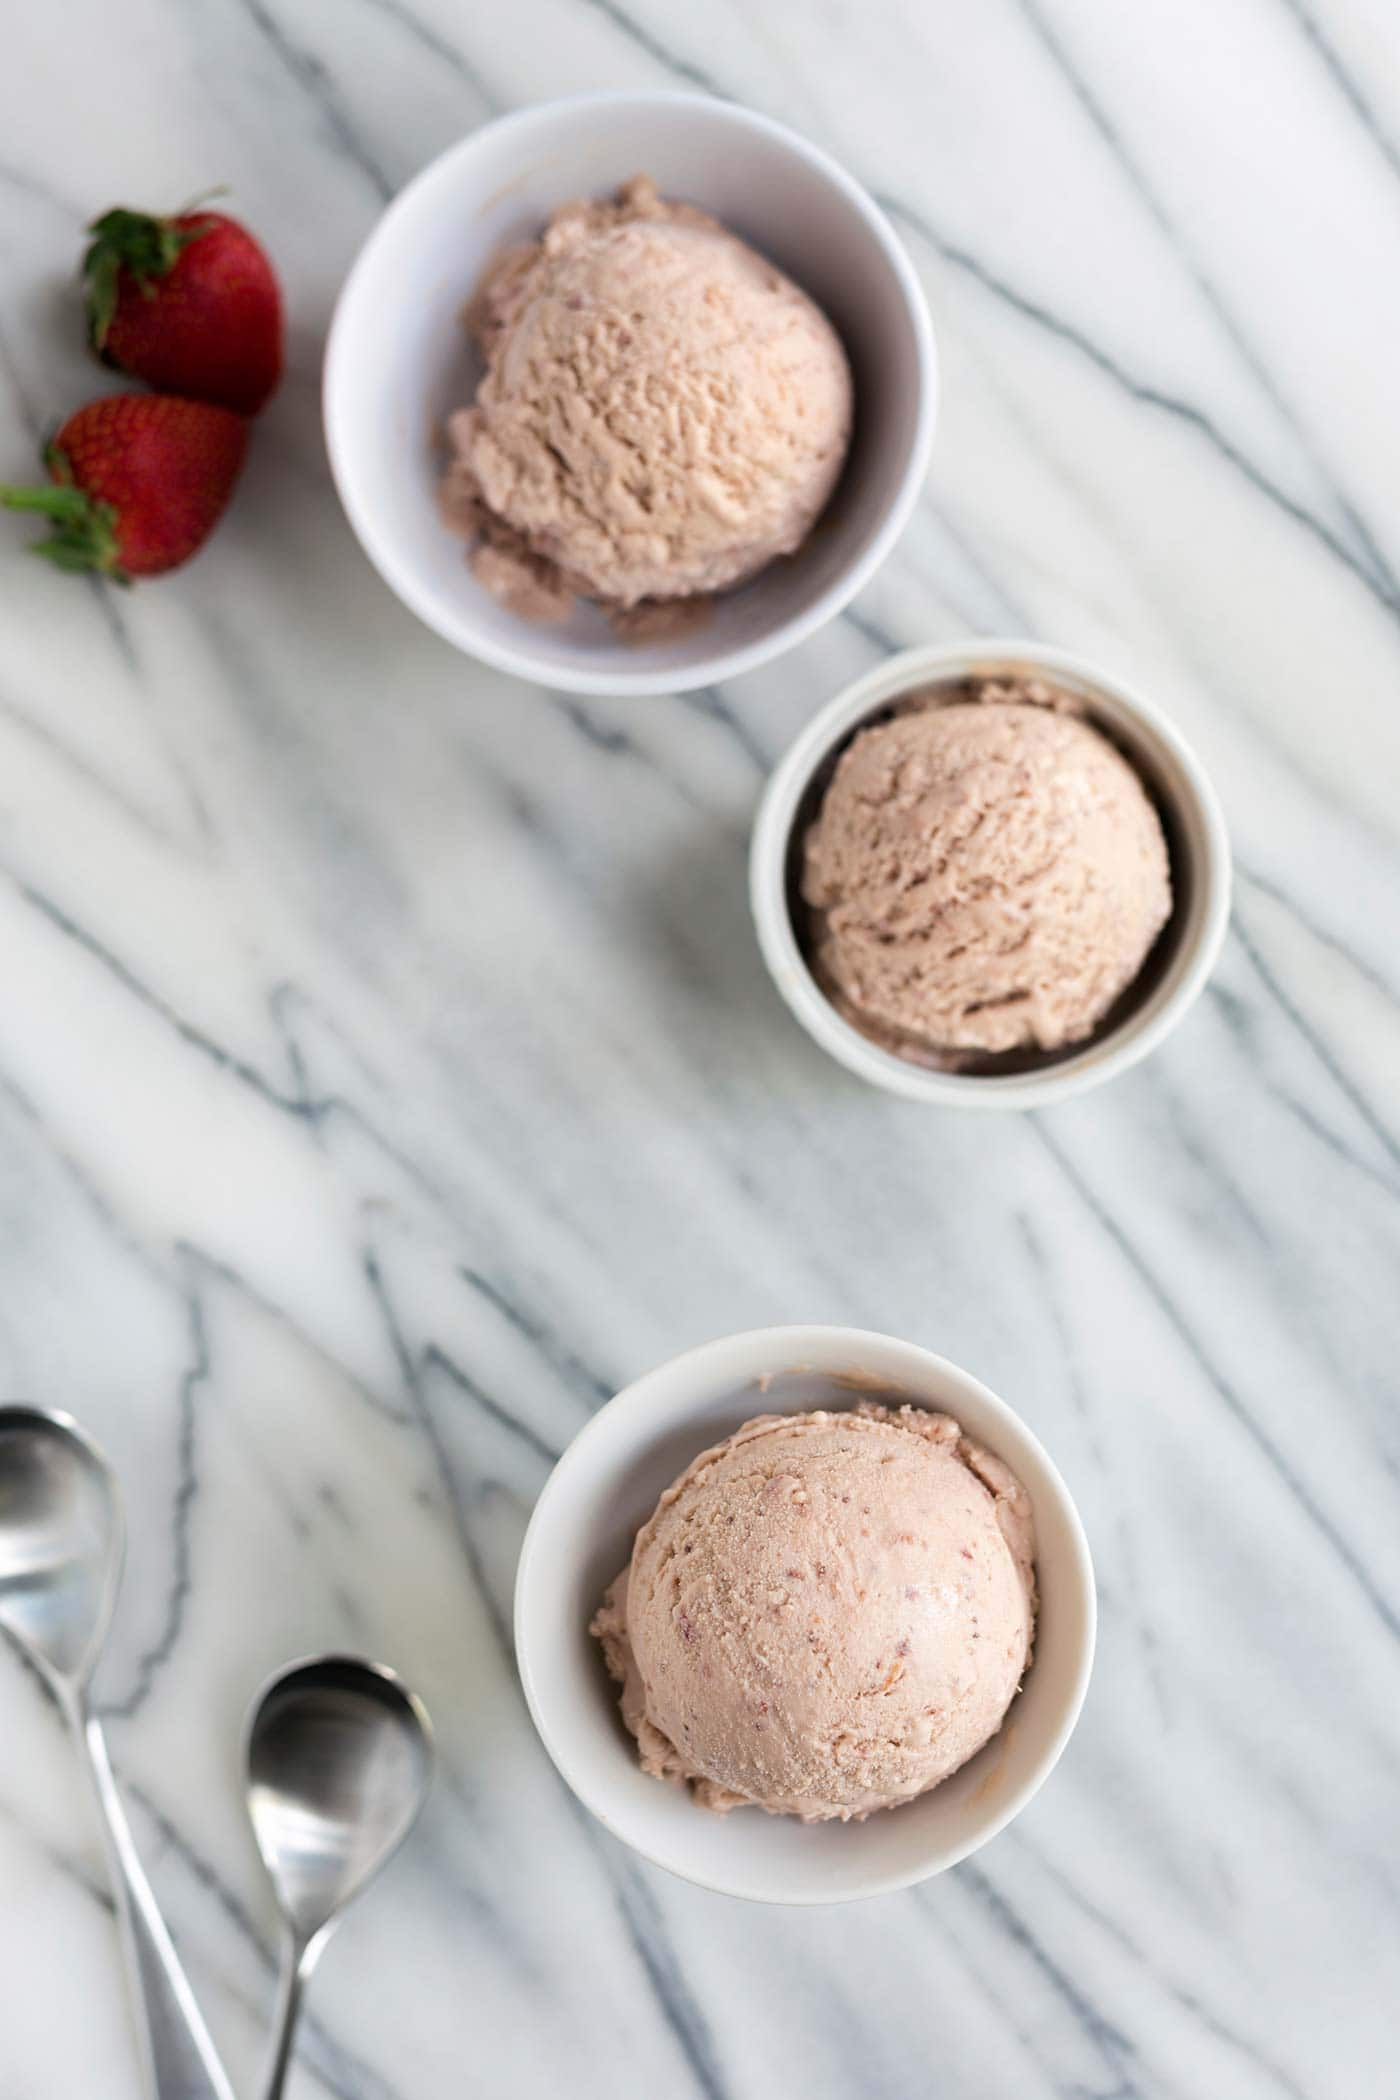 If you love homemade ice cream, you need to try this Roasted Strawberries and Clotted Cream Ice Cream. Get the recipe from Savory Simple!